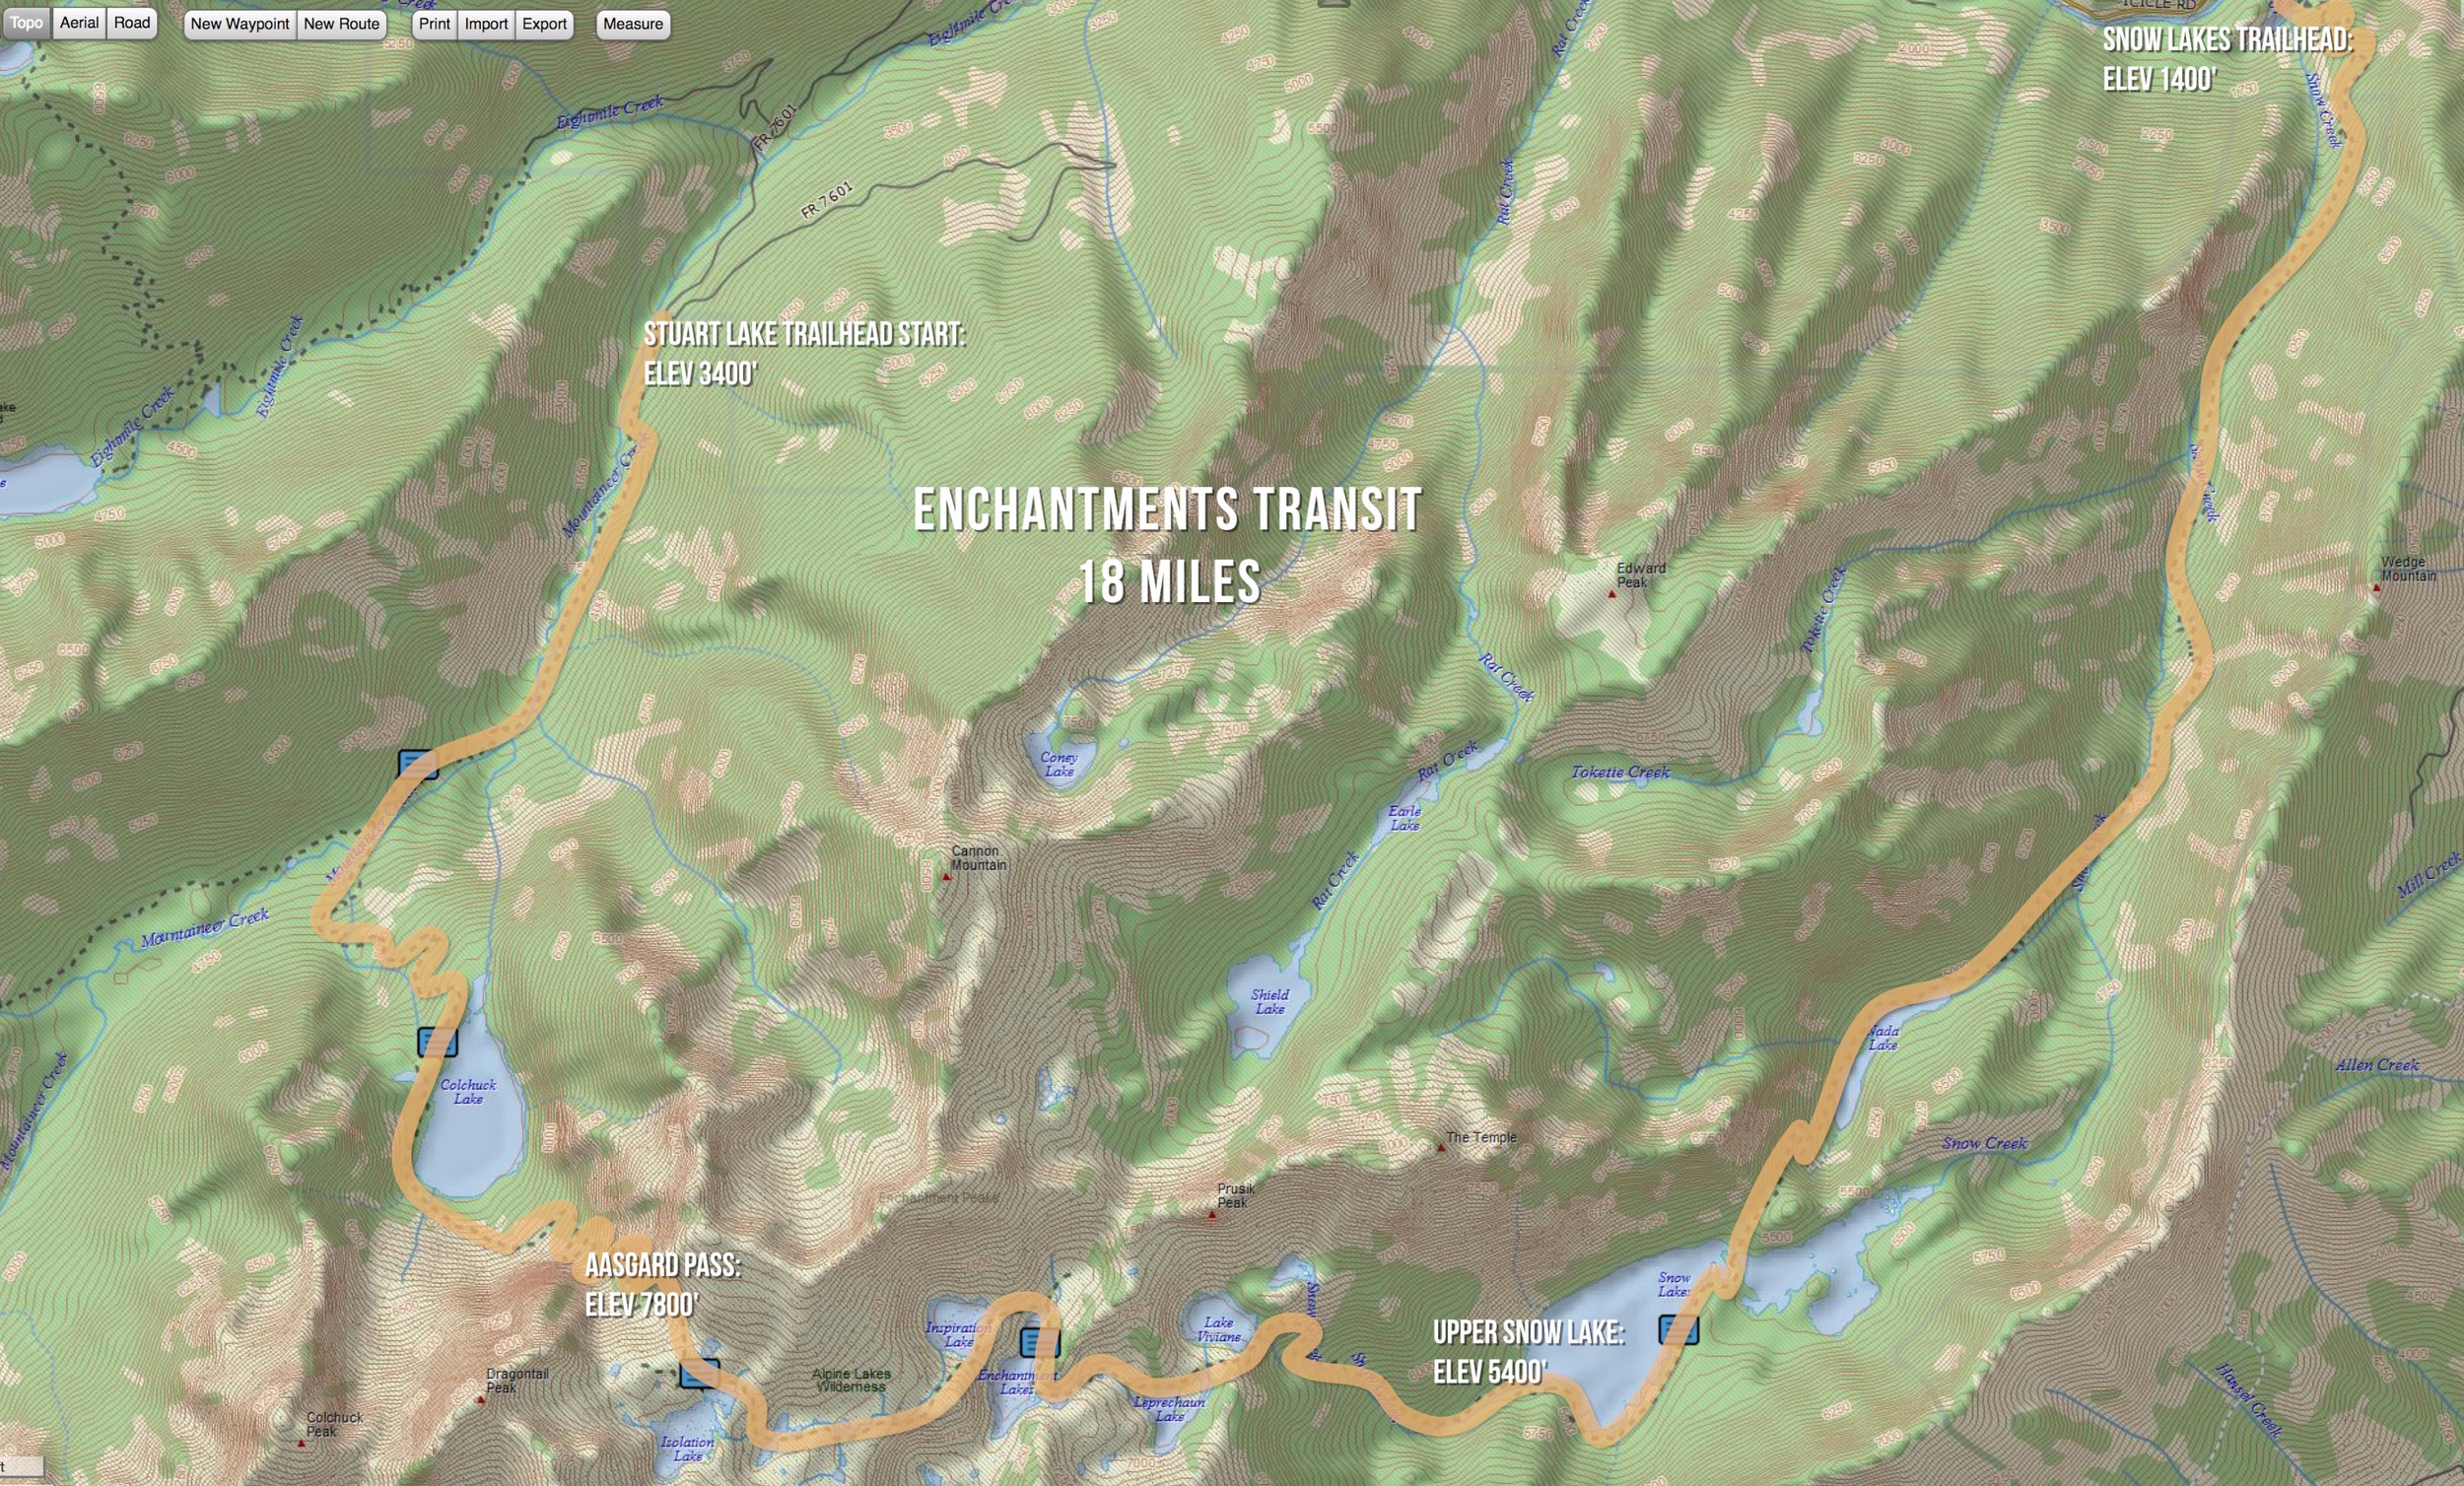 Our one day transit of the Enchantments on August 12, 2016